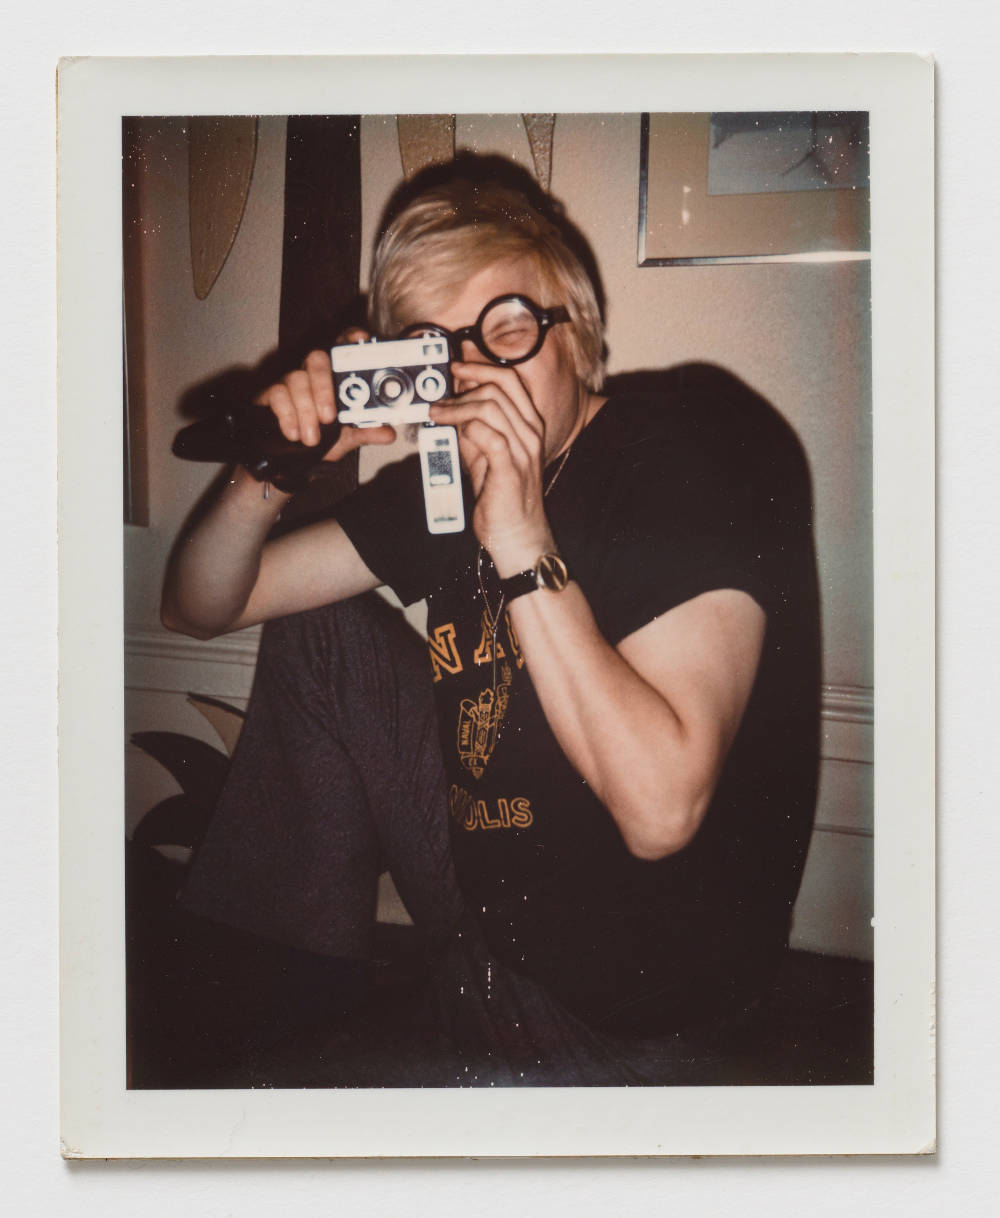 Andy Warhol, David Hockney, ca. 1972. Polaroid 10.7 x 8.5 cm / 4.2 x 3.4 in. [H x W] Inscribed verso lower centre in pencil FB05.00292; stamped verso lower left and lower right Authorized by the Andy Warhol Foundation for the Visual Arts, The Estate of Andy Warhol. © 2018 The Andy Warhol Foundation for the Visual Arts, Inc. / Licensed by DACS, London. Courtesy BASTIAN, London